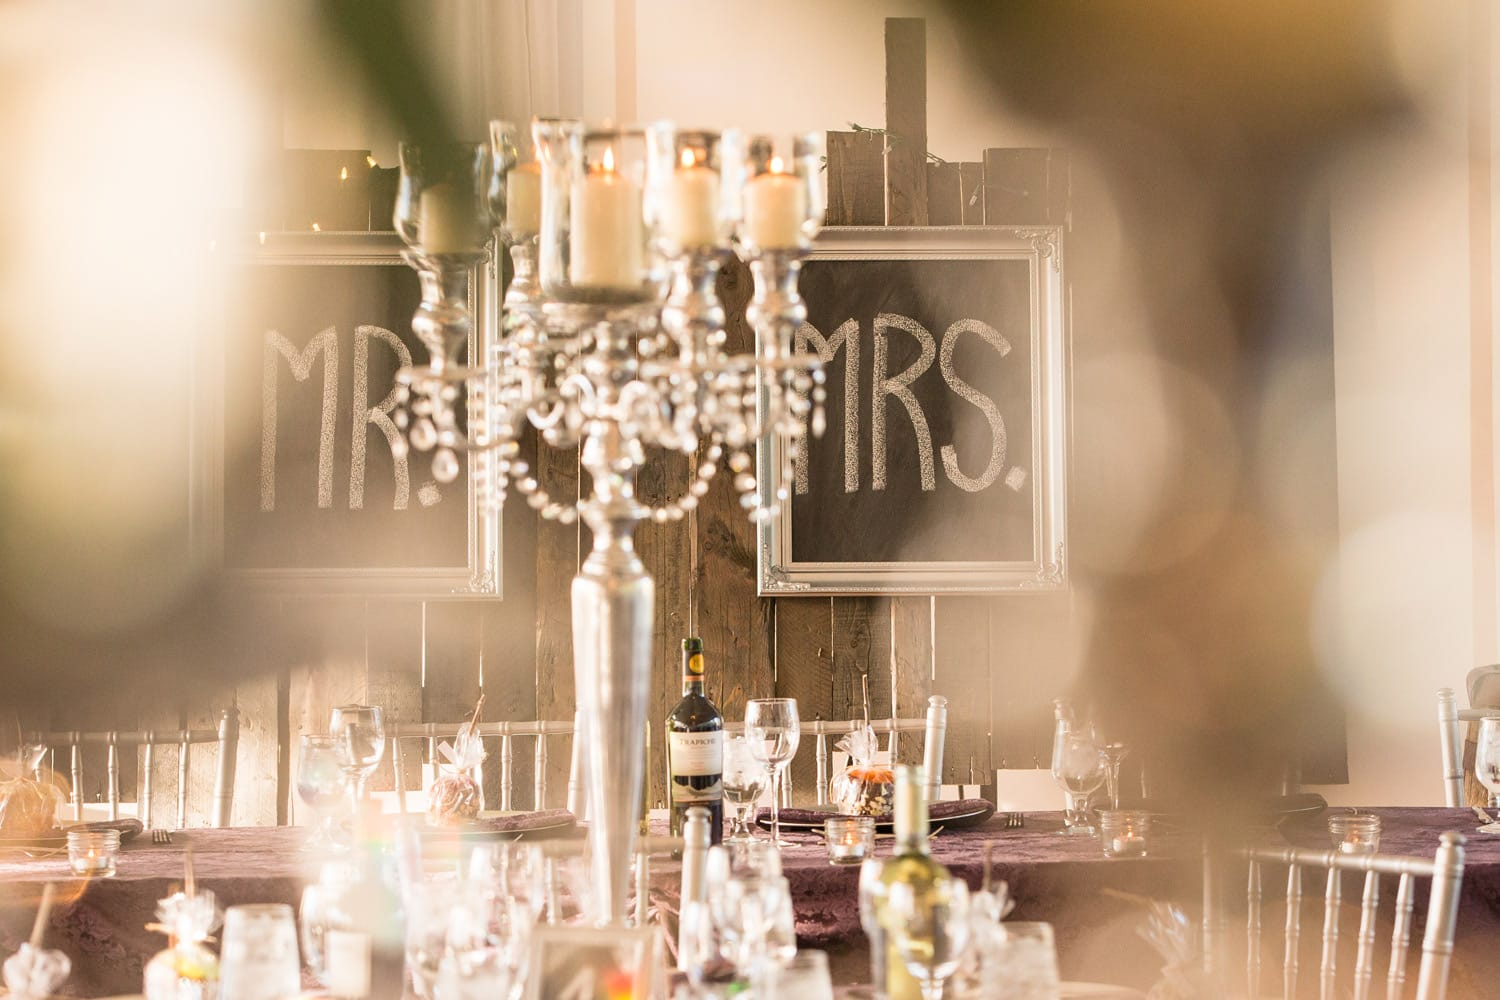 Wedding venue with a chandelier and chalkboard signs